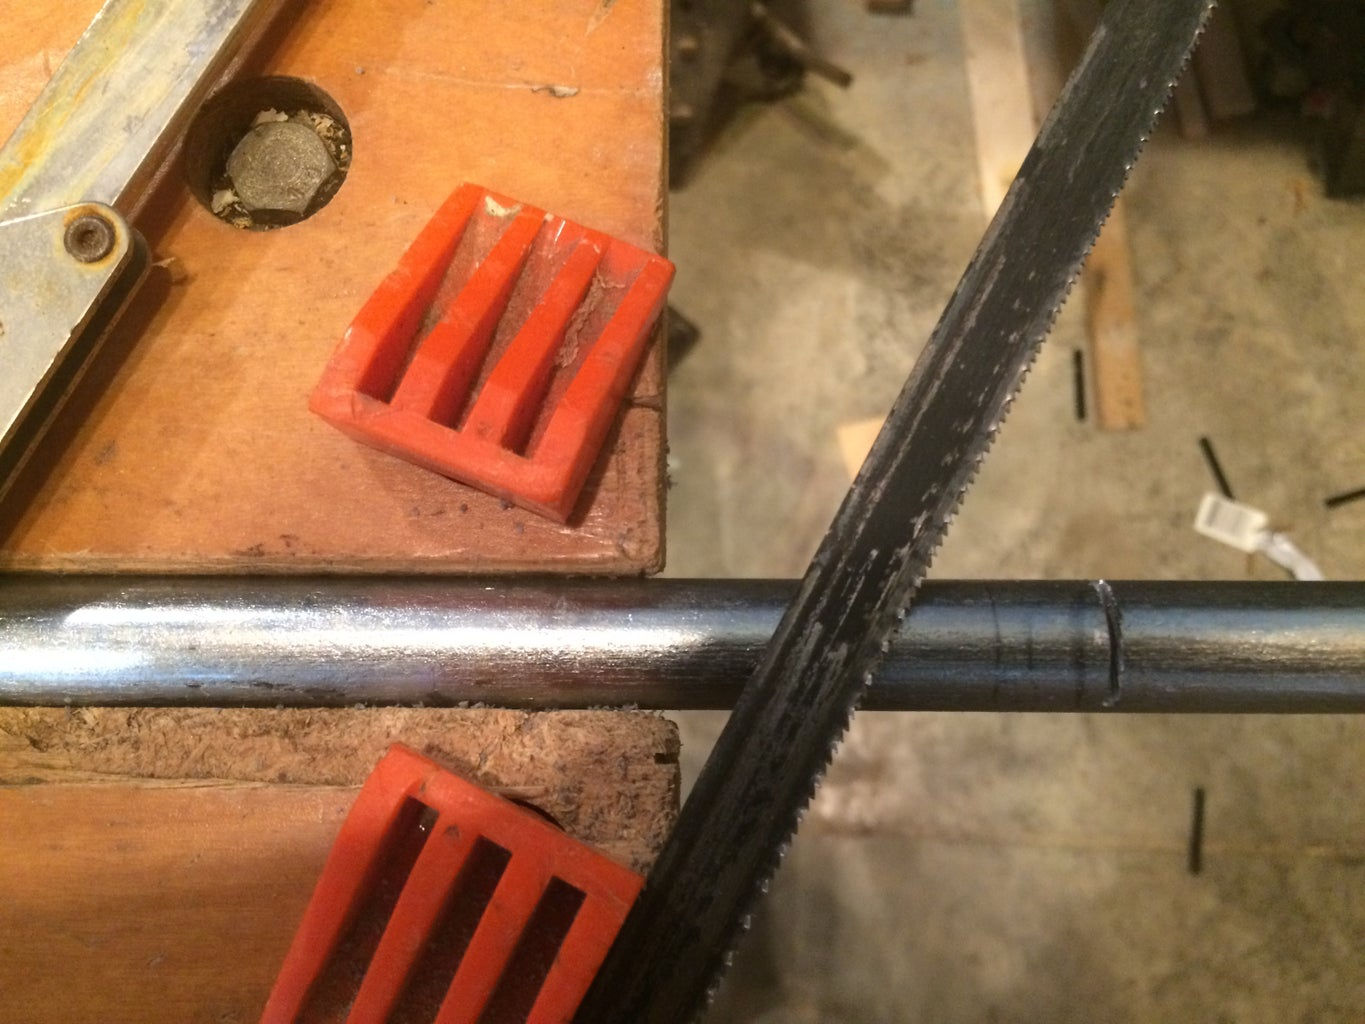 Step 2: Cut and Drill Axel